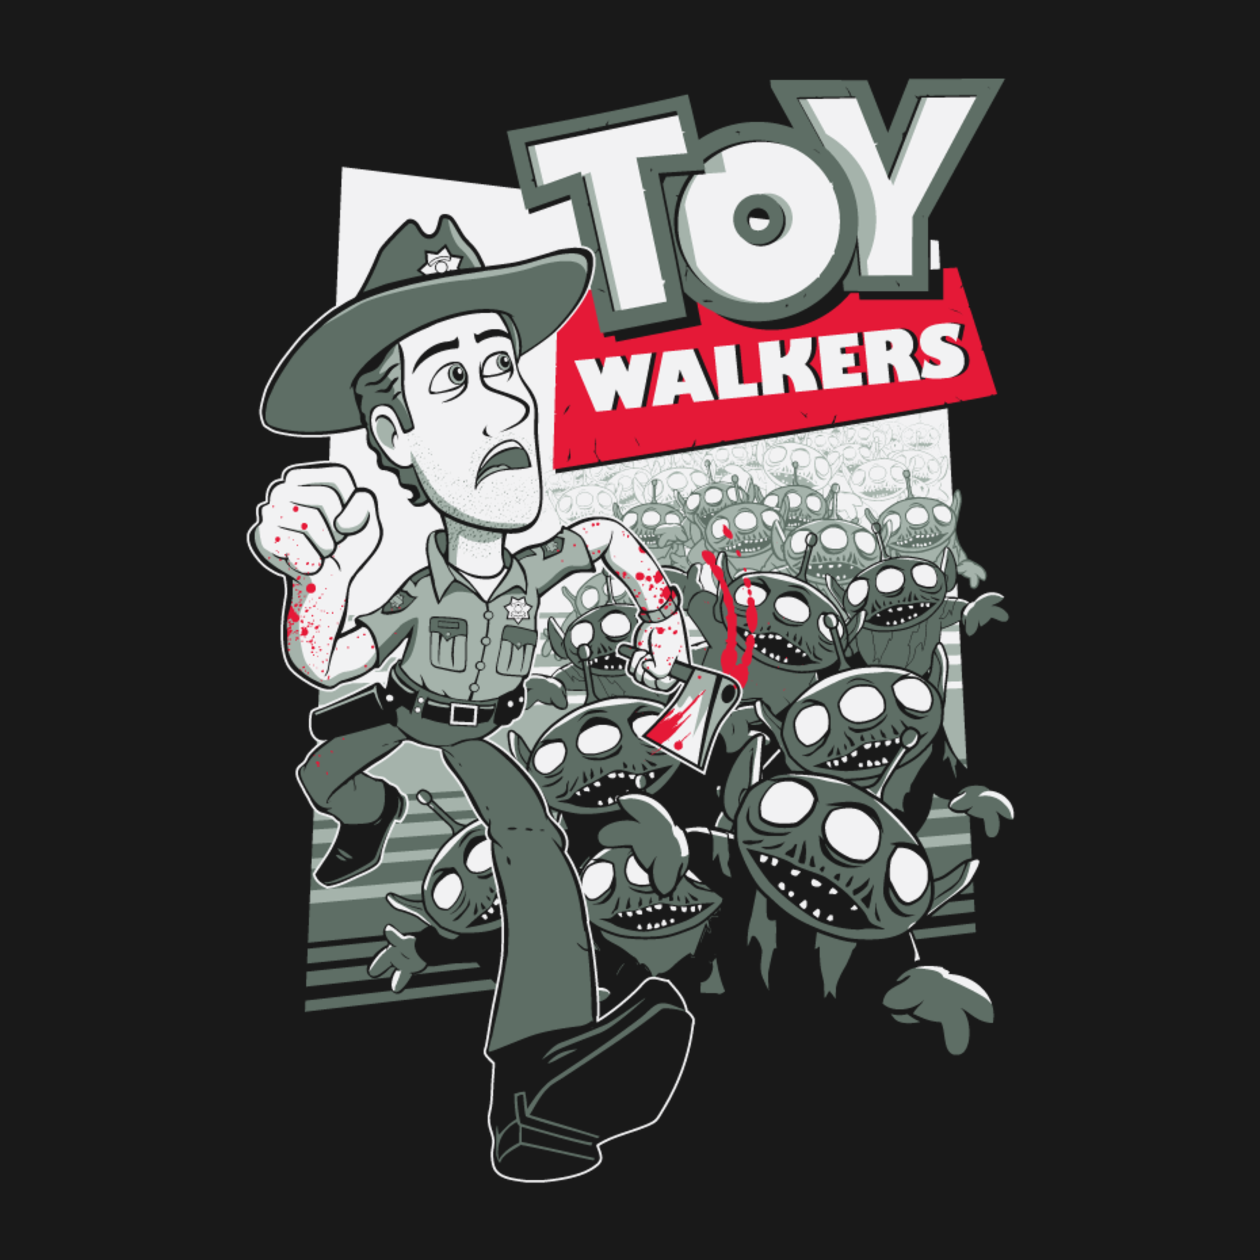 TOY WALKERS TShirt Shirts Walking Dead And Pop Up - Walking dead intro recut drunk people